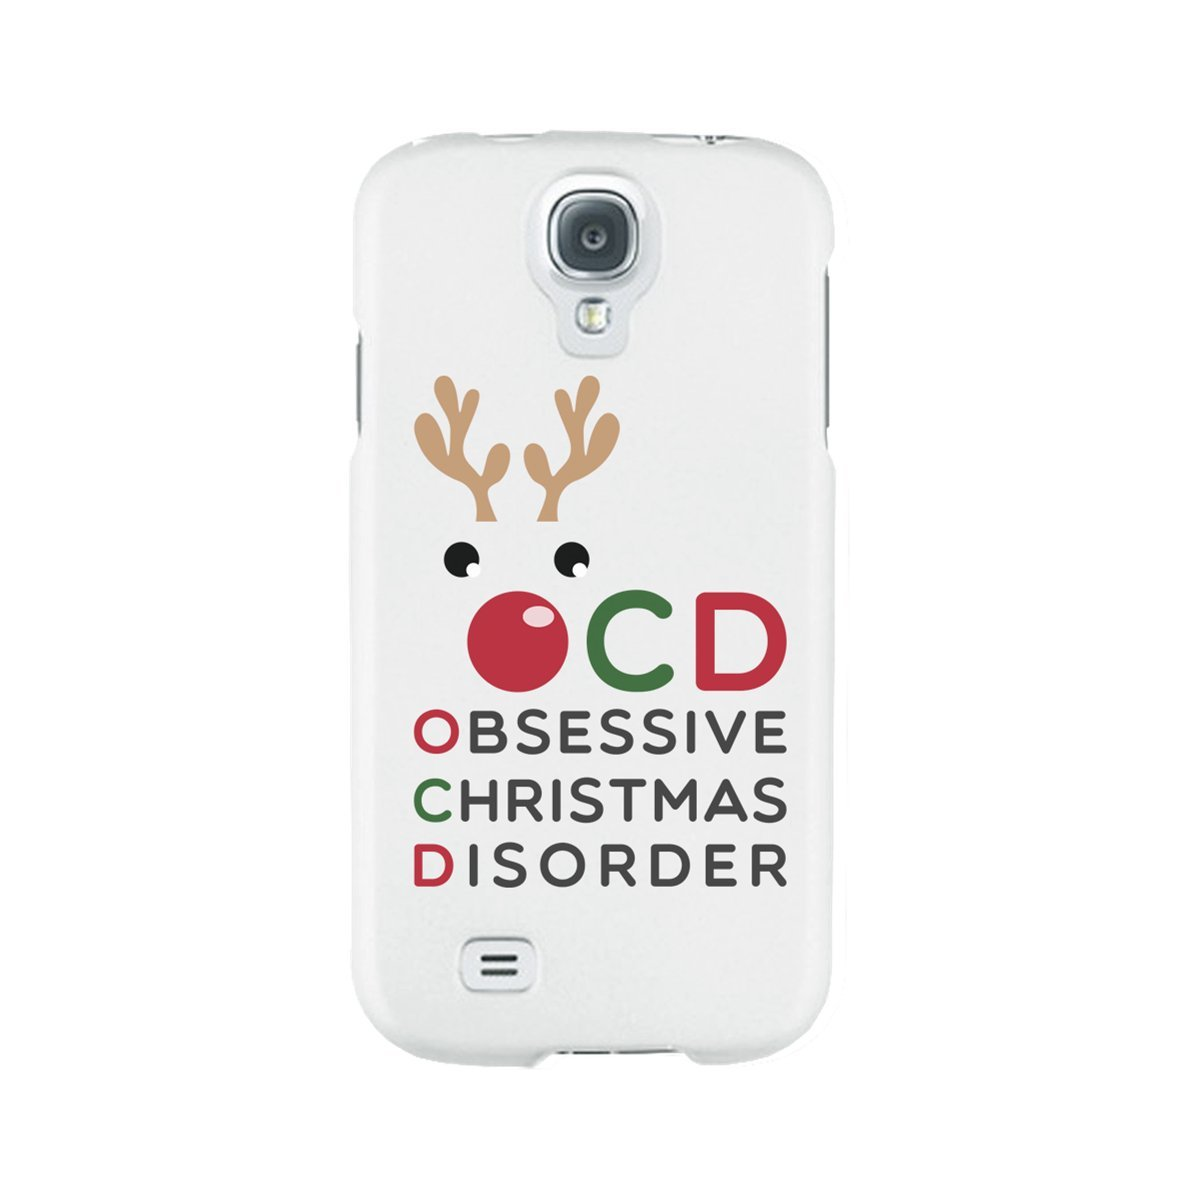 com: Cute Obsessive Christmas Disorder Rudolph phone case for ...